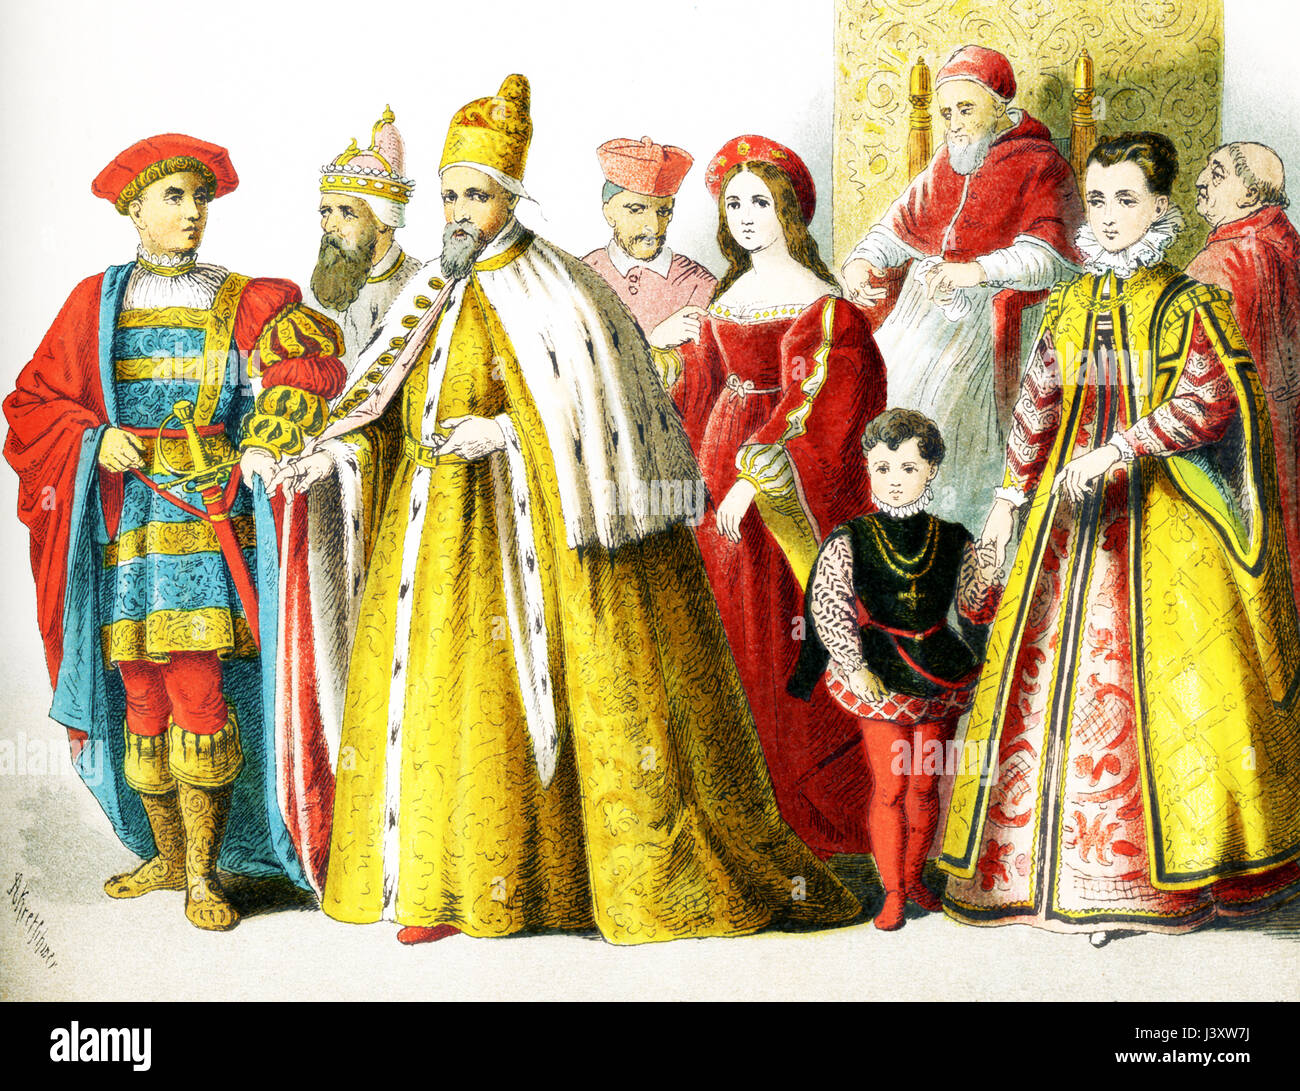 The figures pictured here represent Italians around 1500 A.D. They are from left to right:  man of rank, Doge of - Stock Image